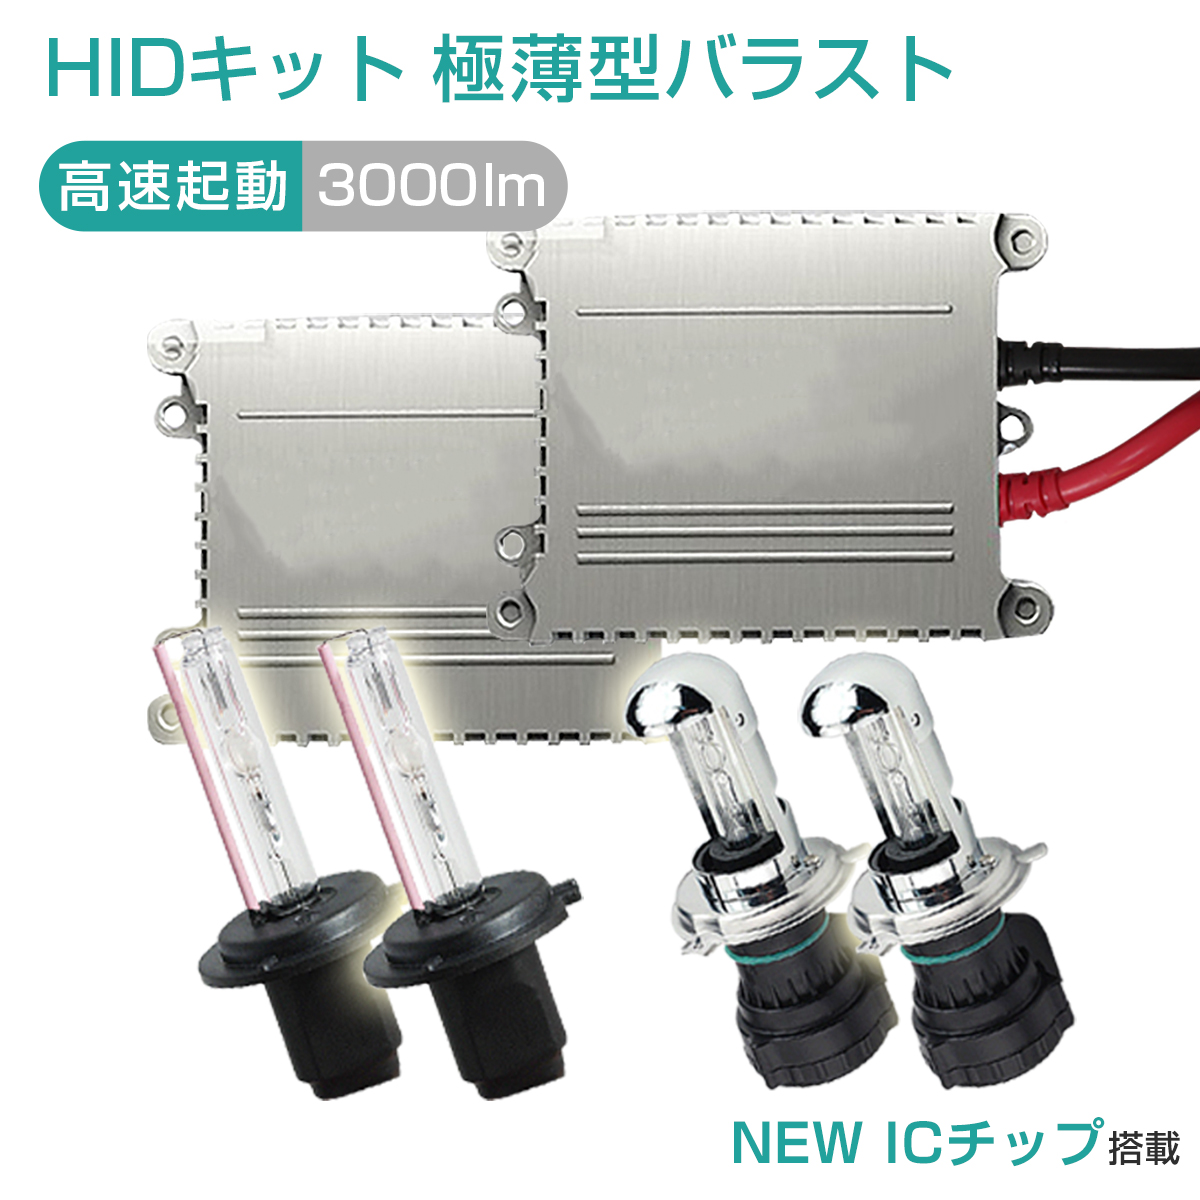 HIDキット 3000LM 快速起動バラスト ナノテック採用 防水極薄型 HID H1 H3 H3c H4 H7 H8 H11 HB3 HB4 D2C(D2R D2S)・D4C(D4R D4S) 3000K 4300K 6000K 8000K 12000K リレーレス 代引不可 宅配便送料無料 1年保証 K&M